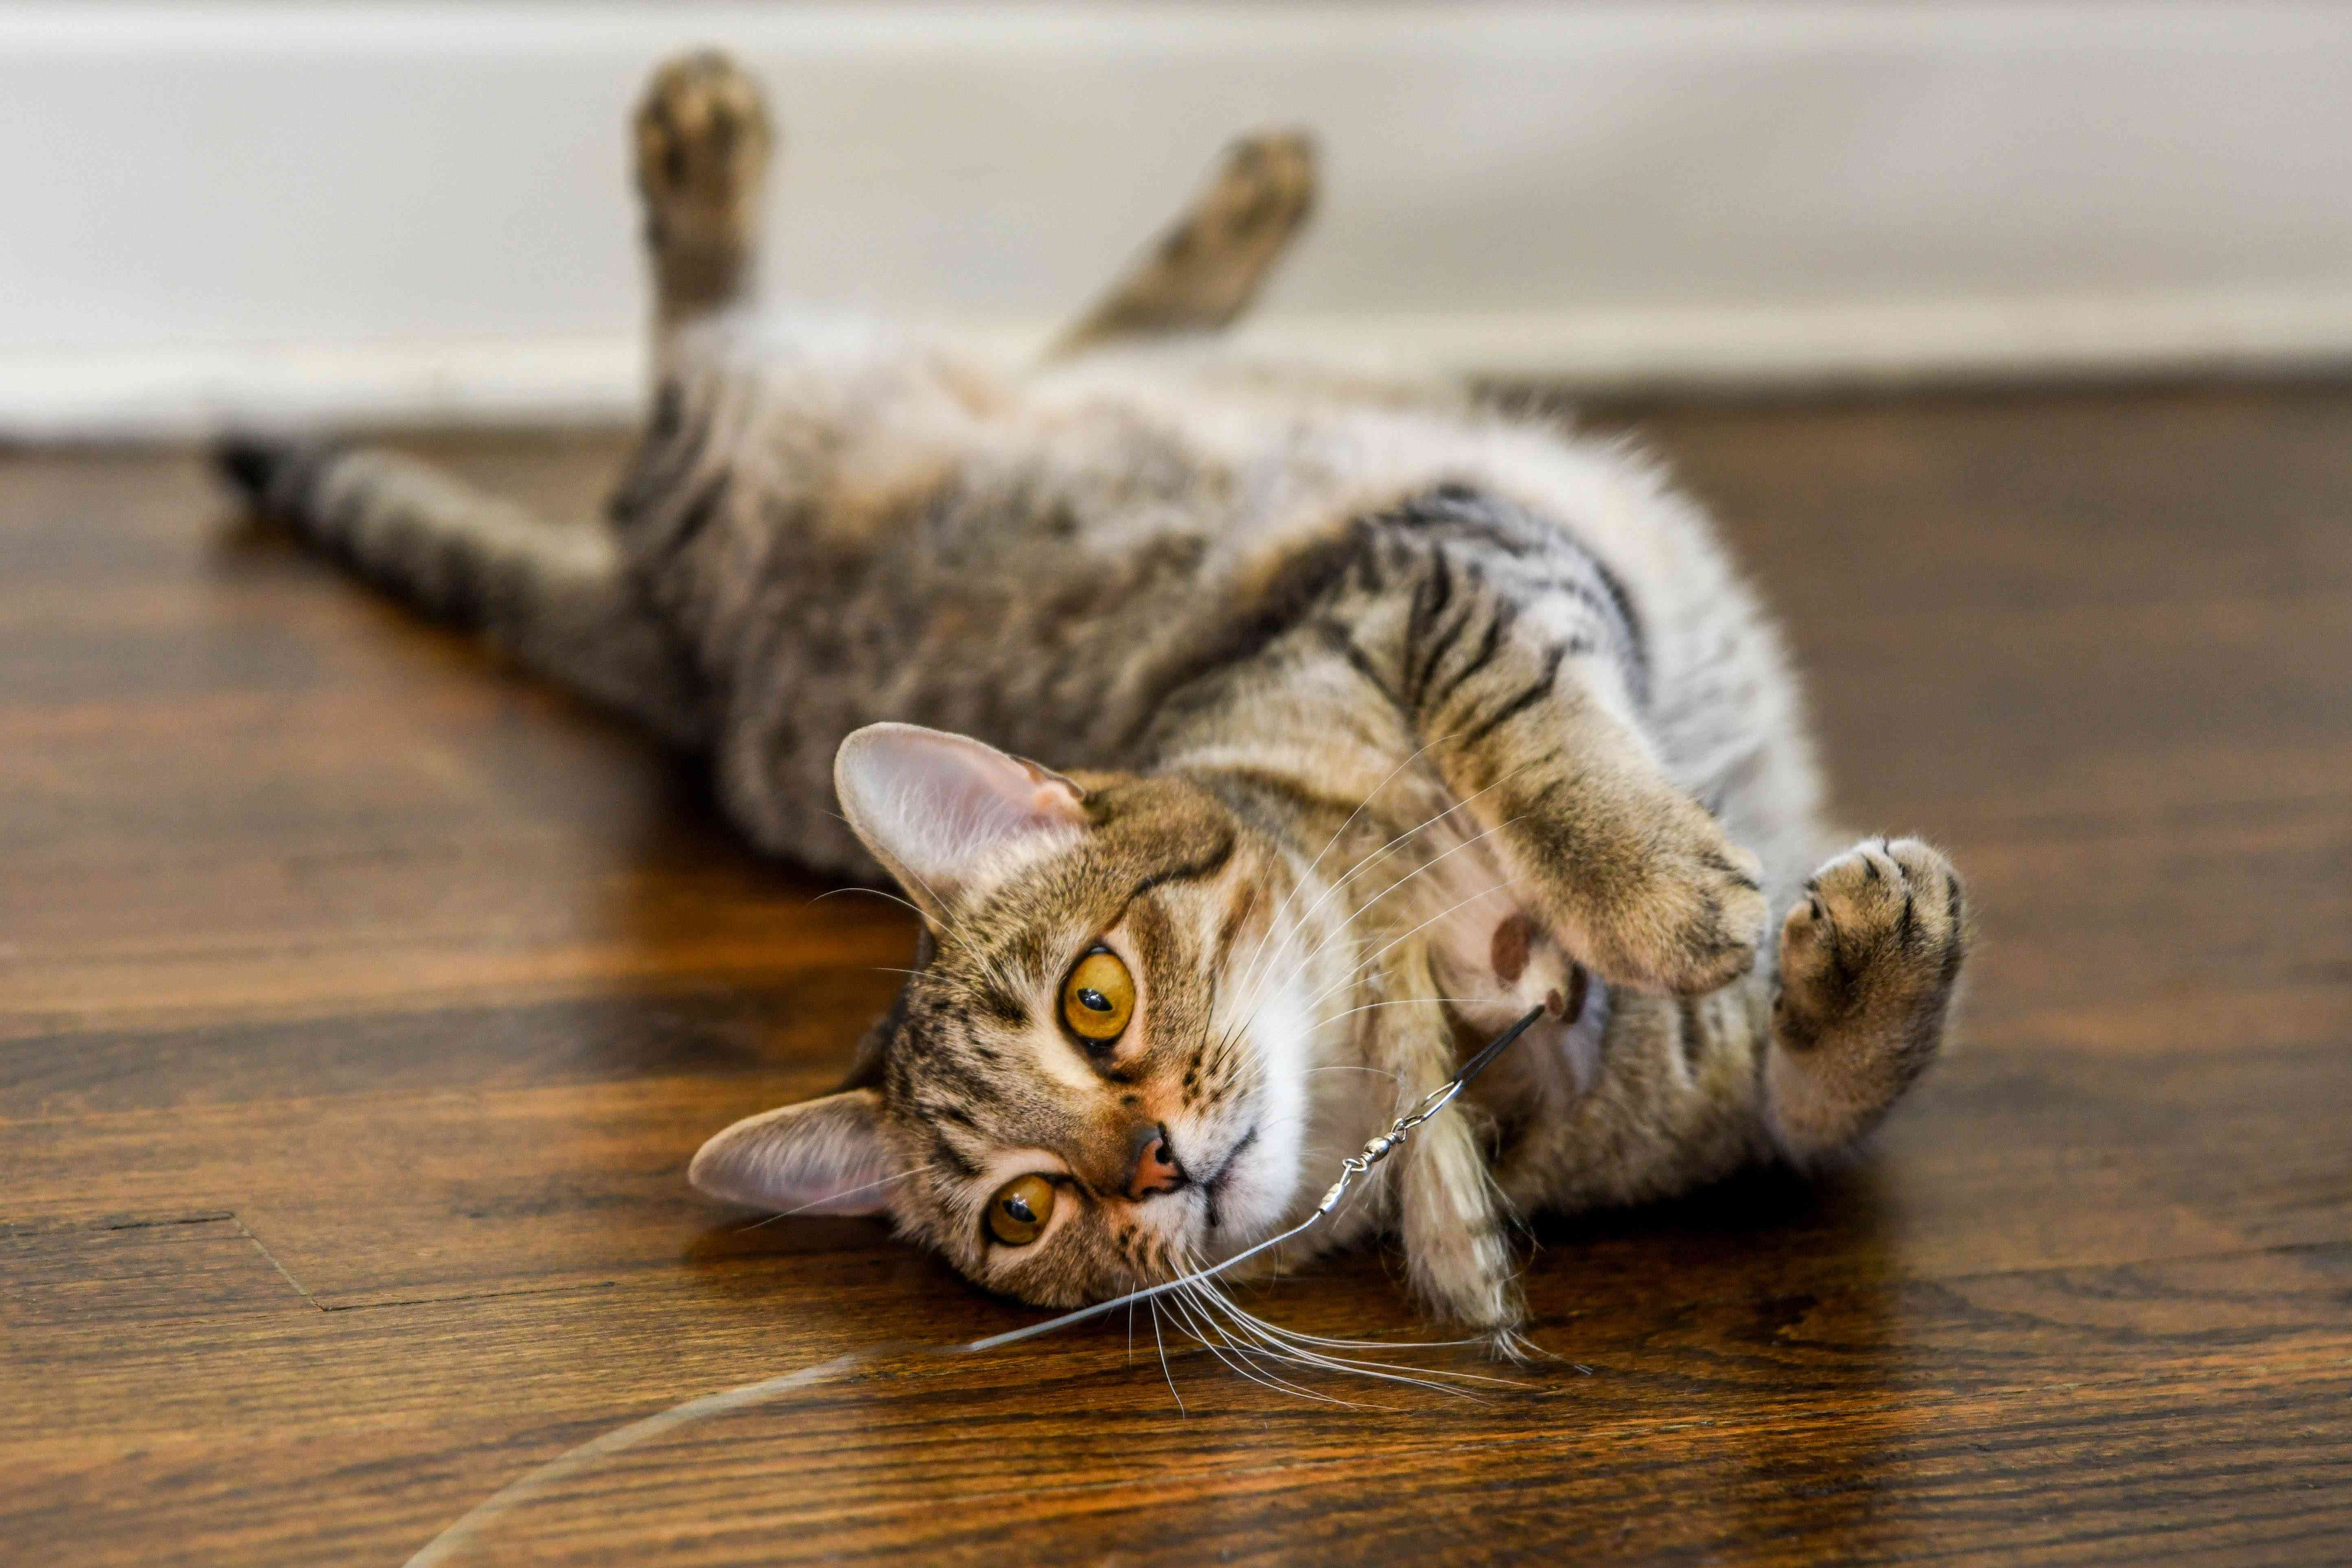 Cat upside down on floor playing with toy